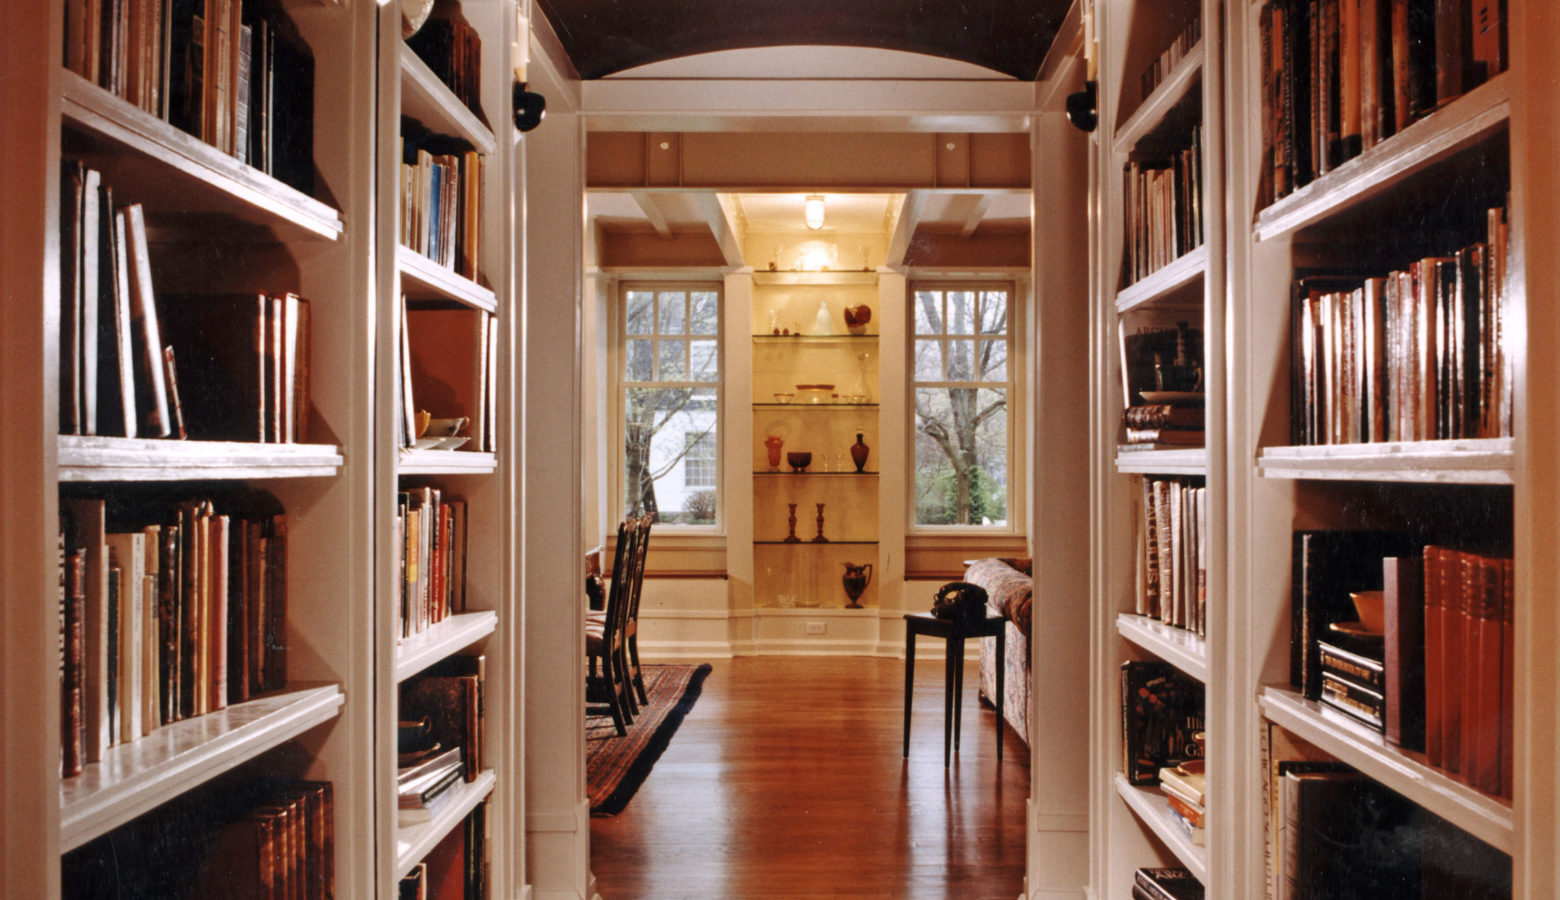 Architectural Design: 6 Inspiring Storage Ideas For Your Home